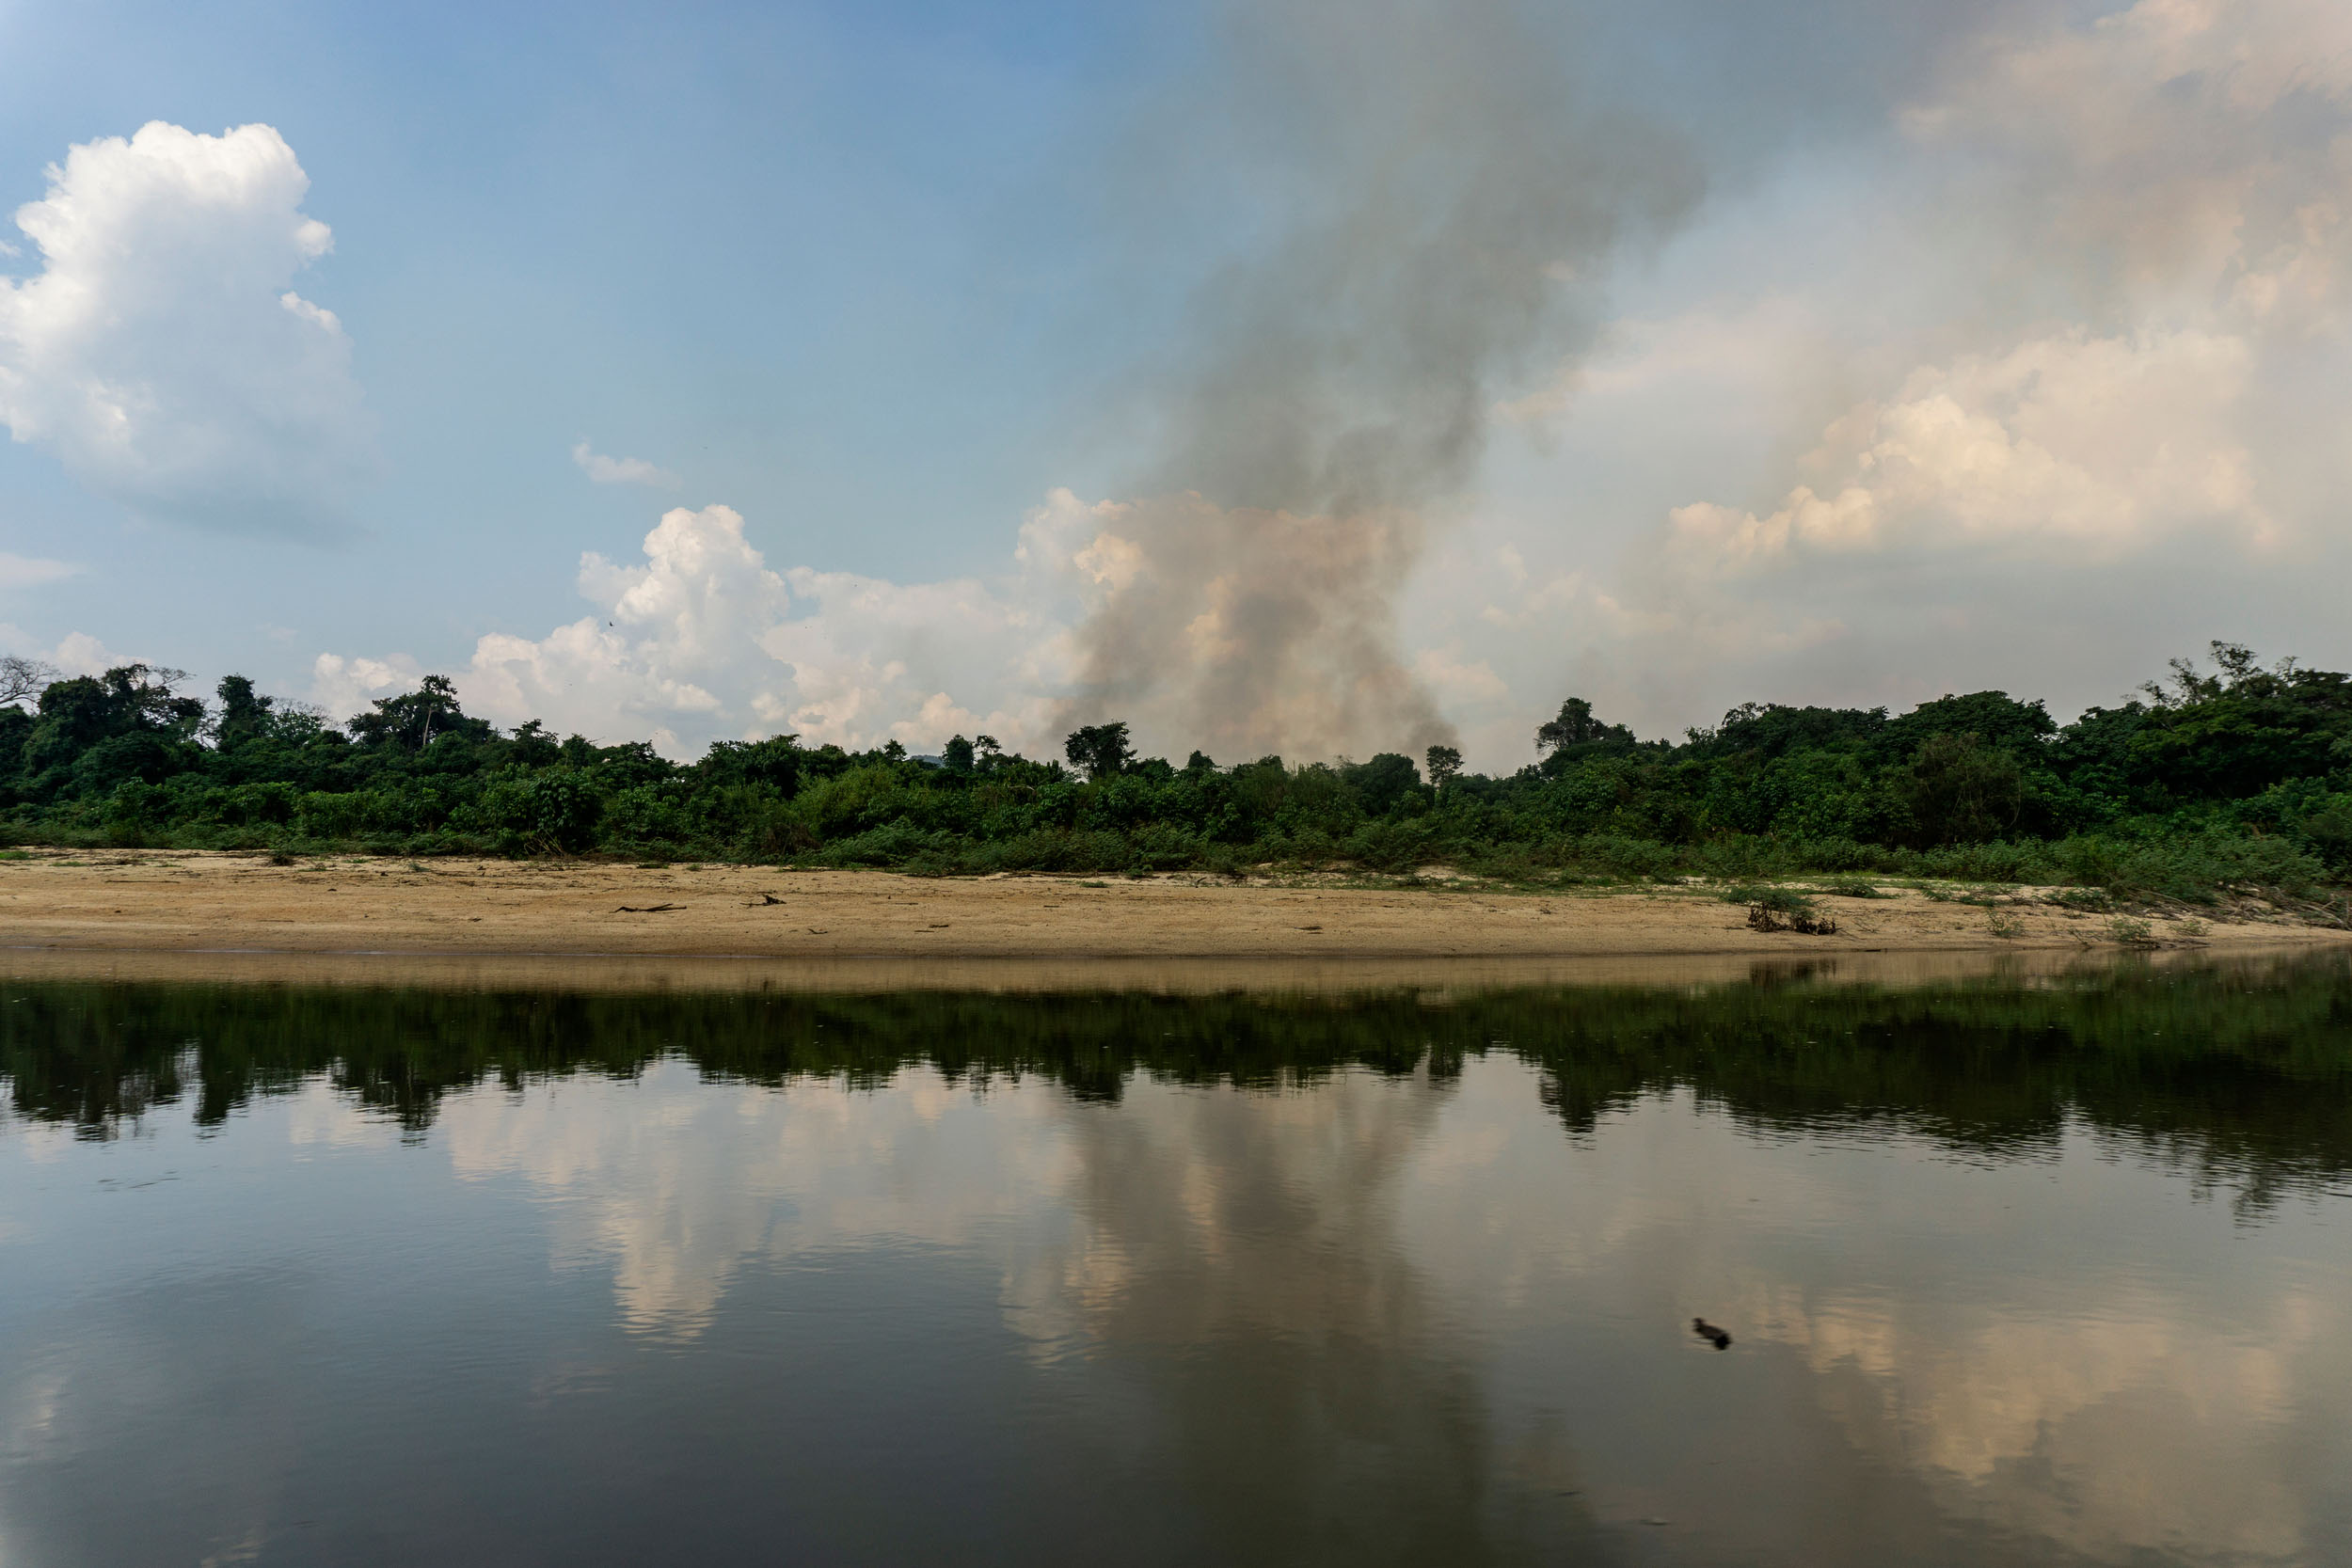 River in the foreground, with a beach and rainforest, and smoke rising from a small area, indicating a forest fire